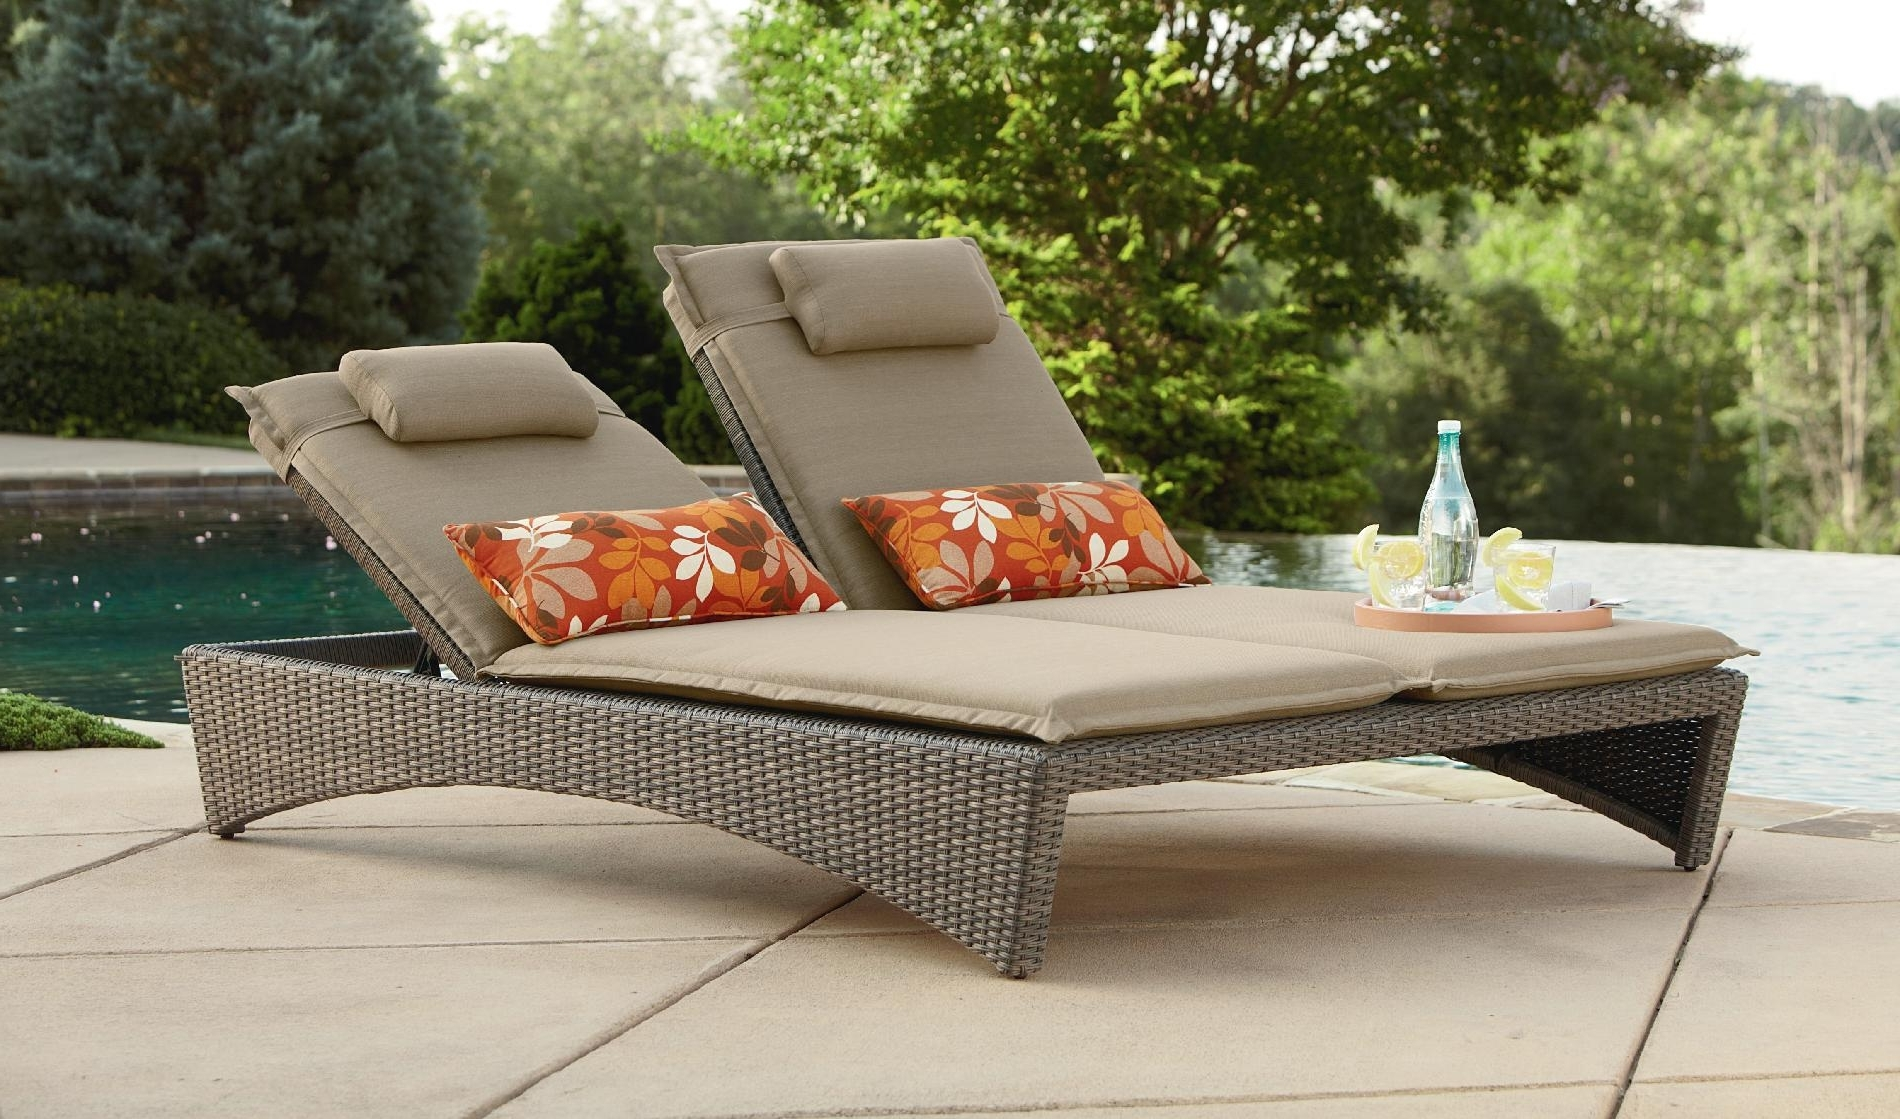 Best Pool Chaise Lounge Chairs — Bed And Shower : Decorating Pool Regarding Latest Chaise Lounge Patio Chairs (View 2 of 15)